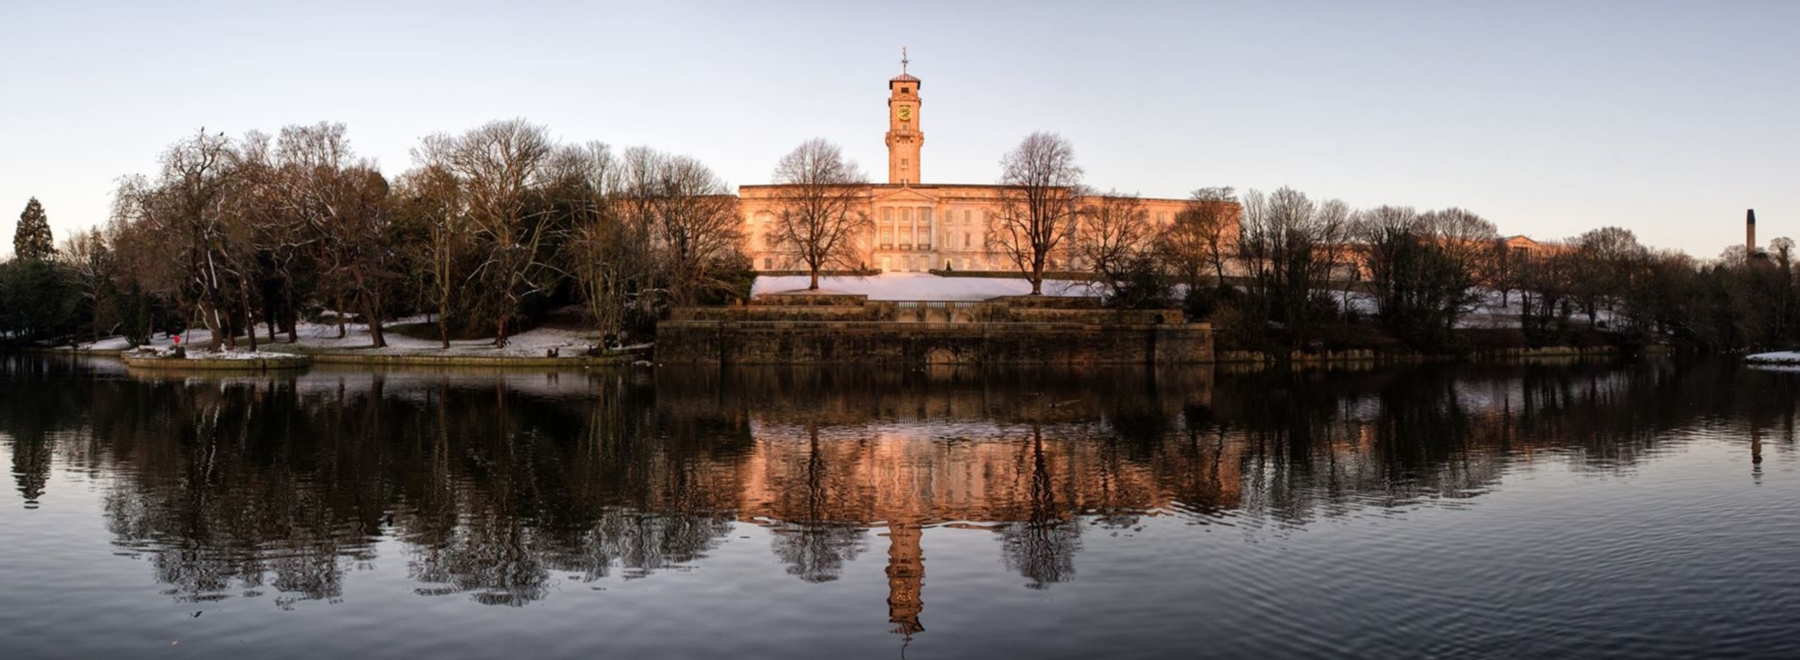 University of Nottingham header